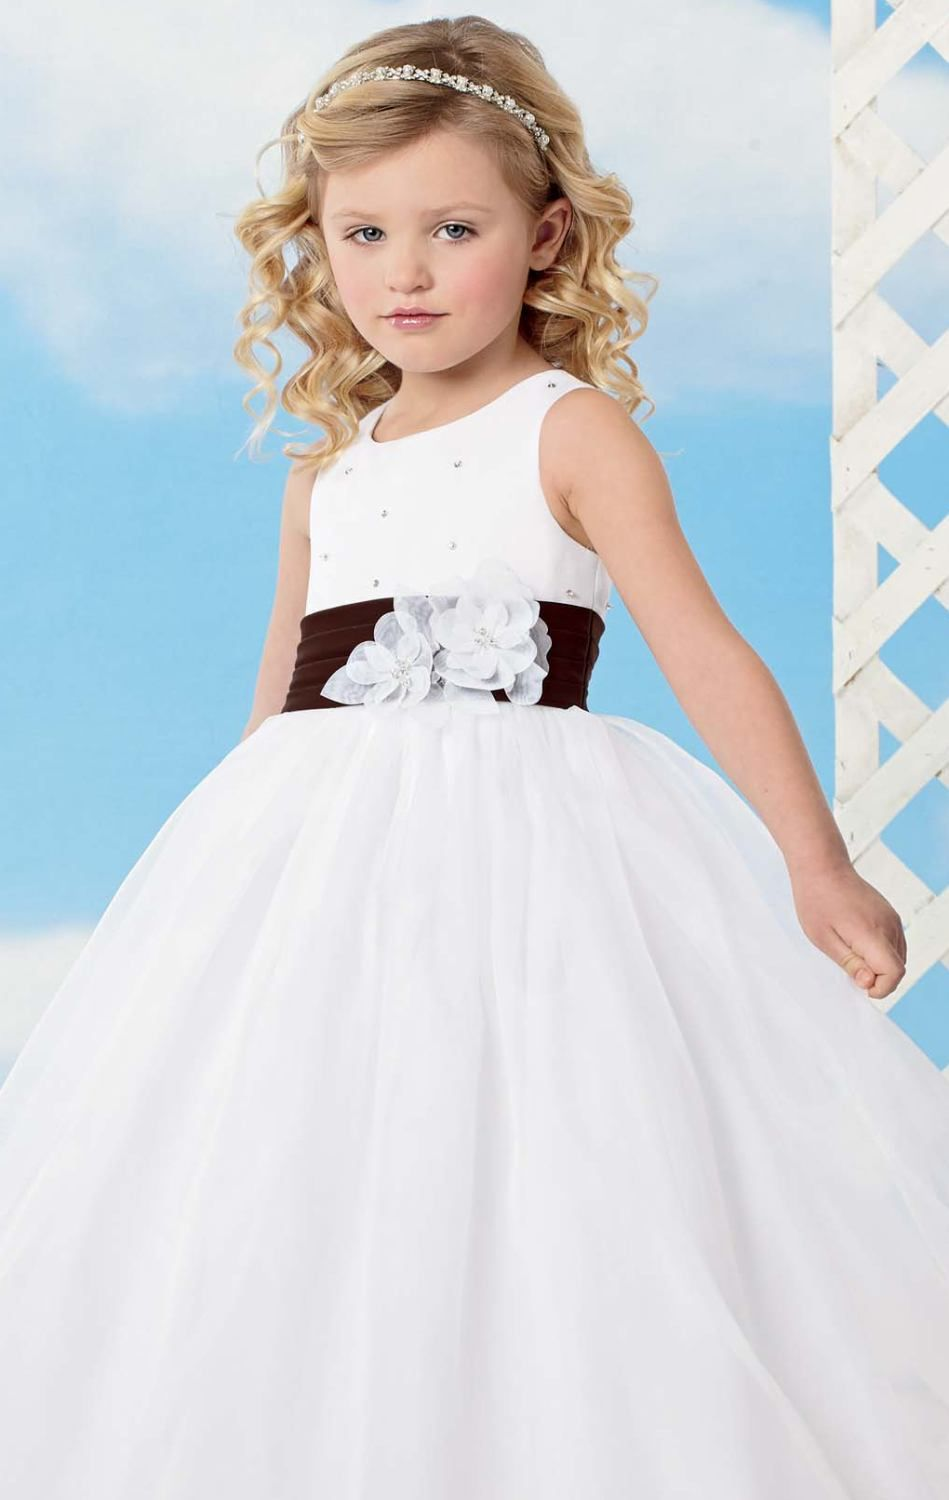 Click to buy pretty a line flowers girl dresses black sash click to buy pretty a line flowers girl dresses black sash ombrellifo Choice Image